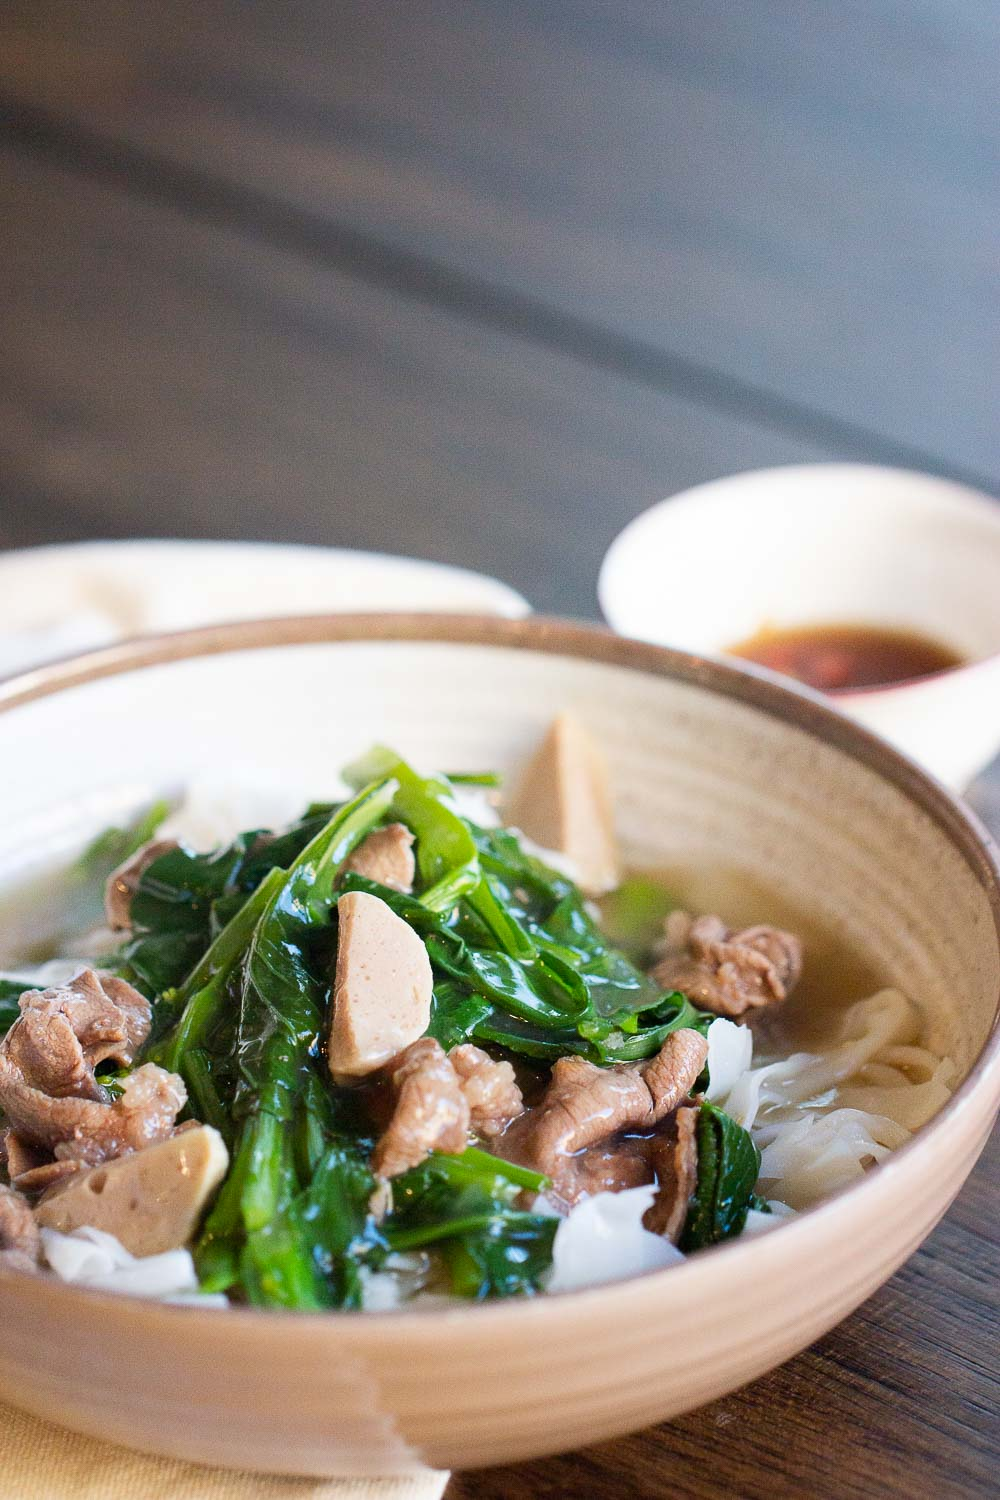 This Kwetiau Siram ((Flat Rice Noodles in Gravy / Rad Na) is true comfort food and this simplified version is so delicious and easy to make at home.